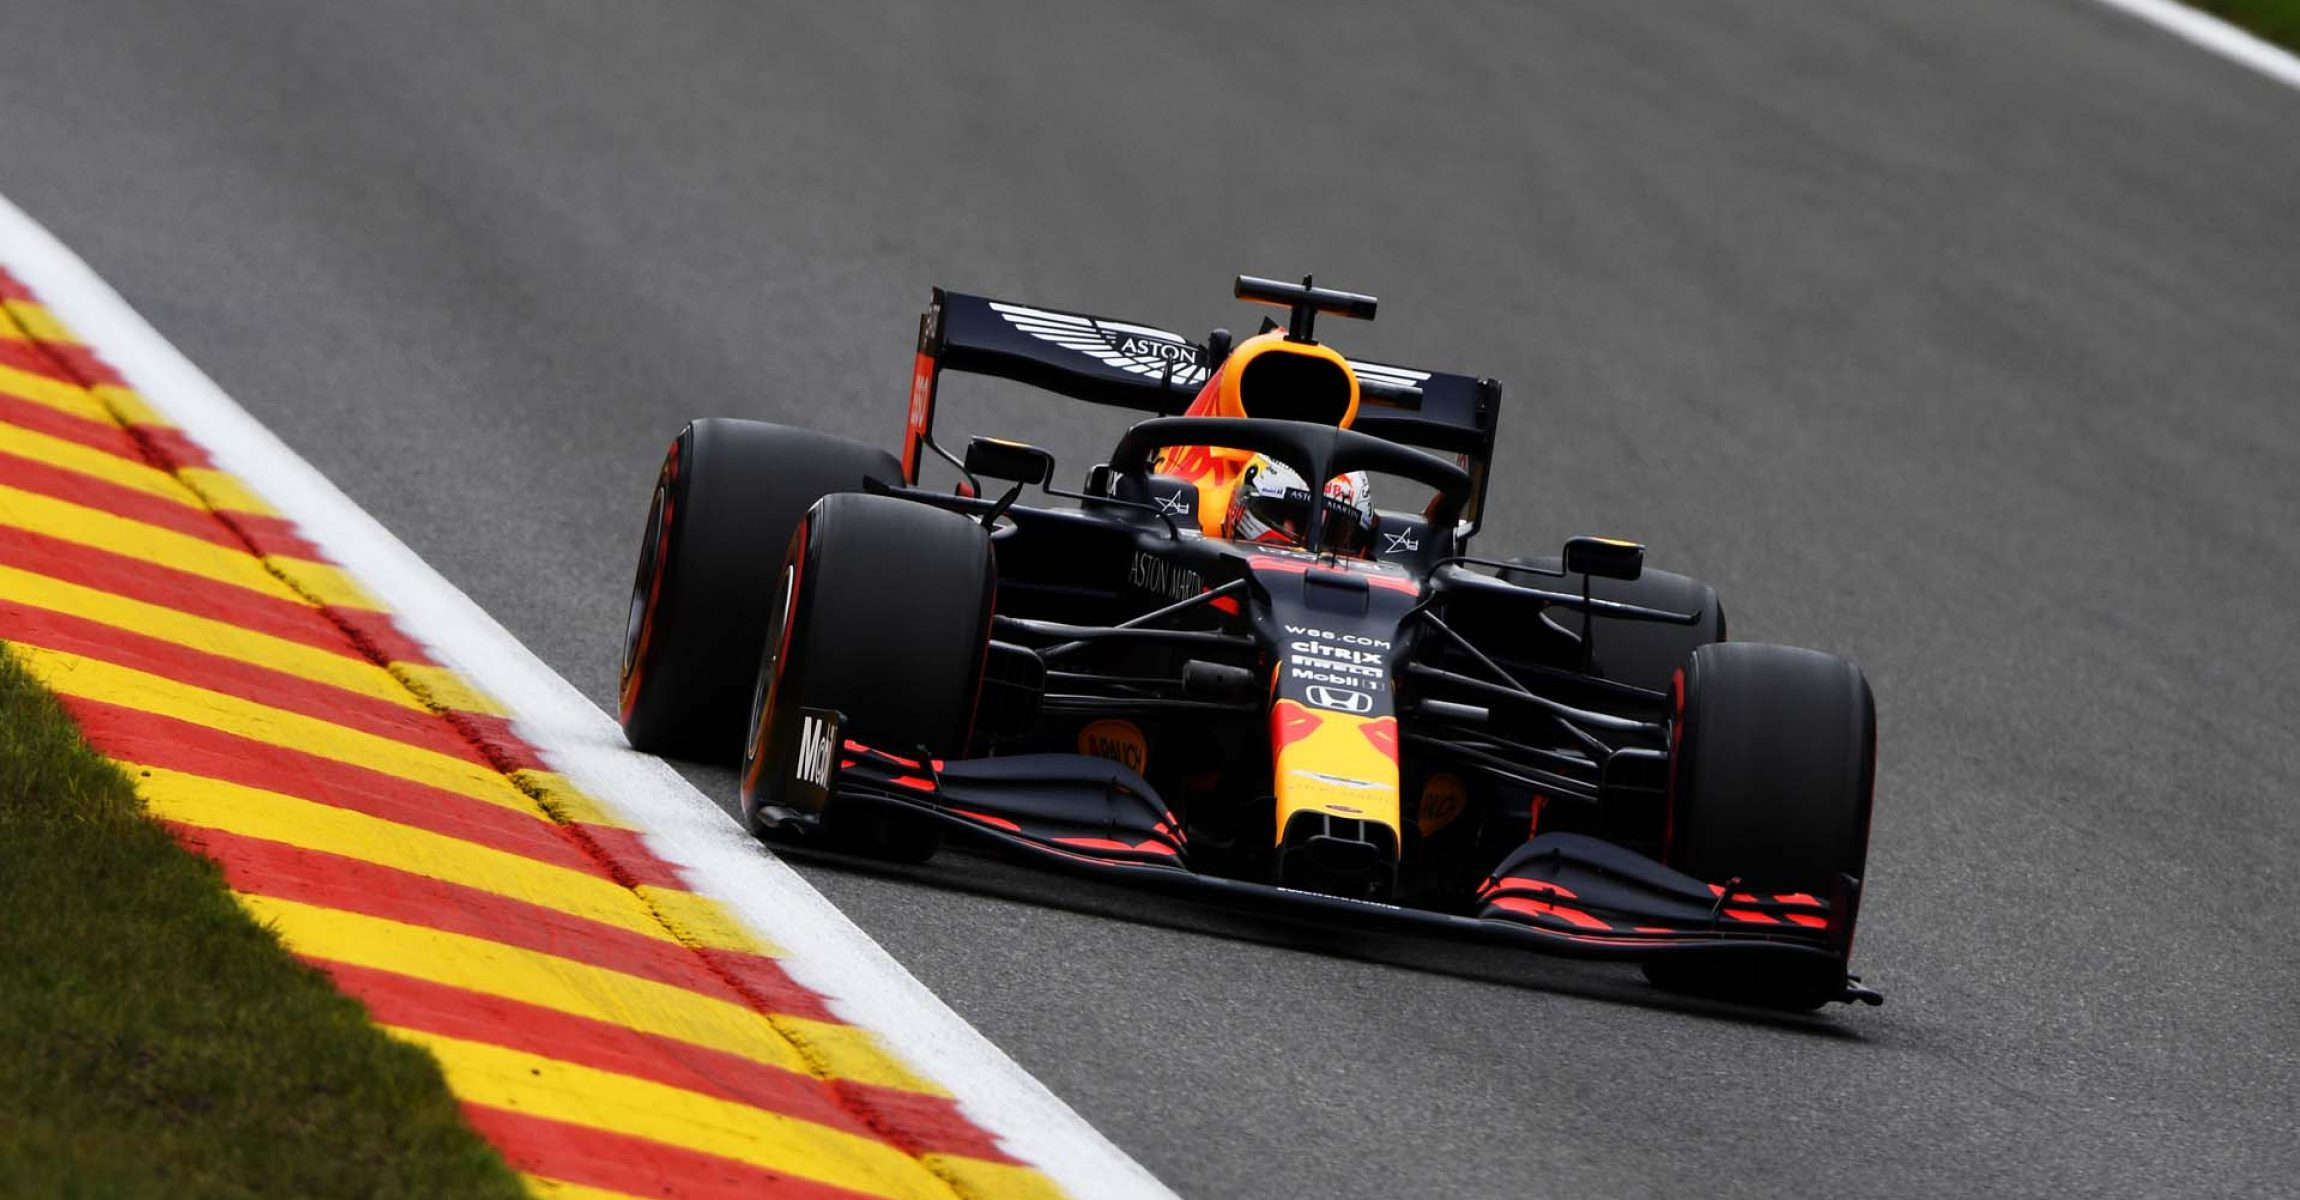 SPA, BELGIUM - AUGUST 28: Max Verstappen of the Netherlands driving the (33) Aston Martin Red Bull Racing RB16 drives during practice for the F1 Grand Prix of Belgium at Circuit de Spa-Francorchamps on August 28, 2020 in Spa, Belgium. (Photo by Rudy Carezzevoli/Getty Images)